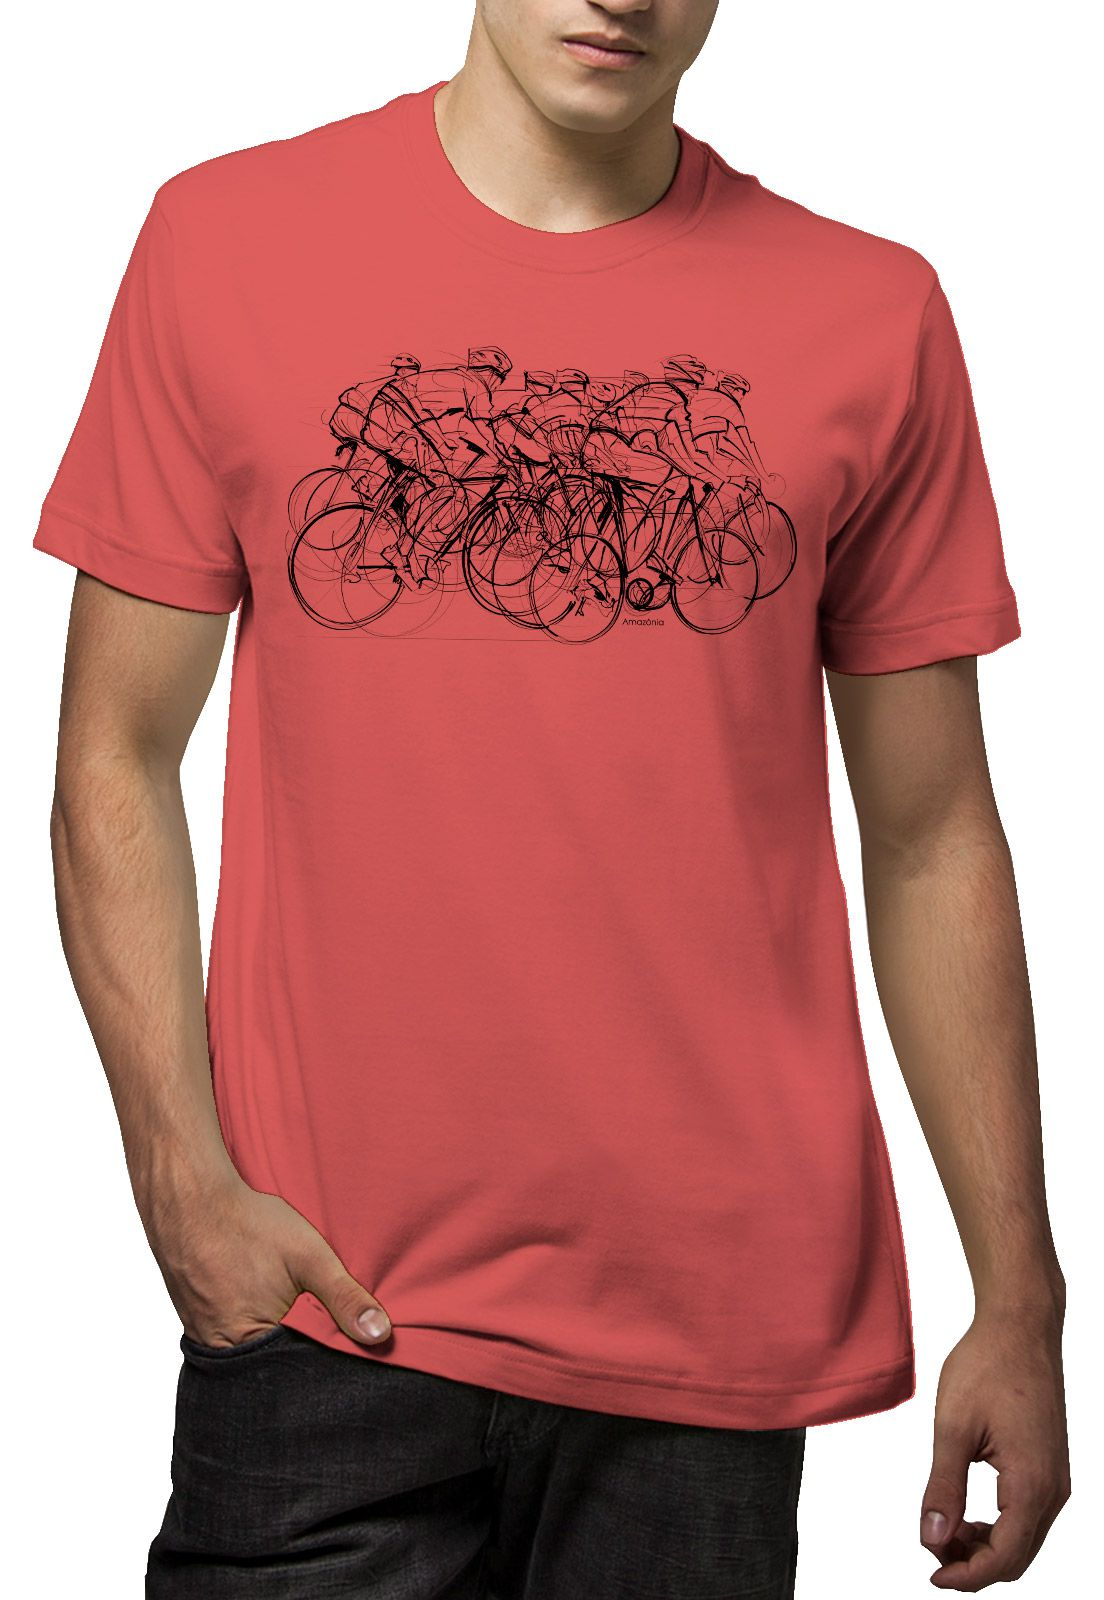 Camiseta Amazônia Tour de France - Rosa